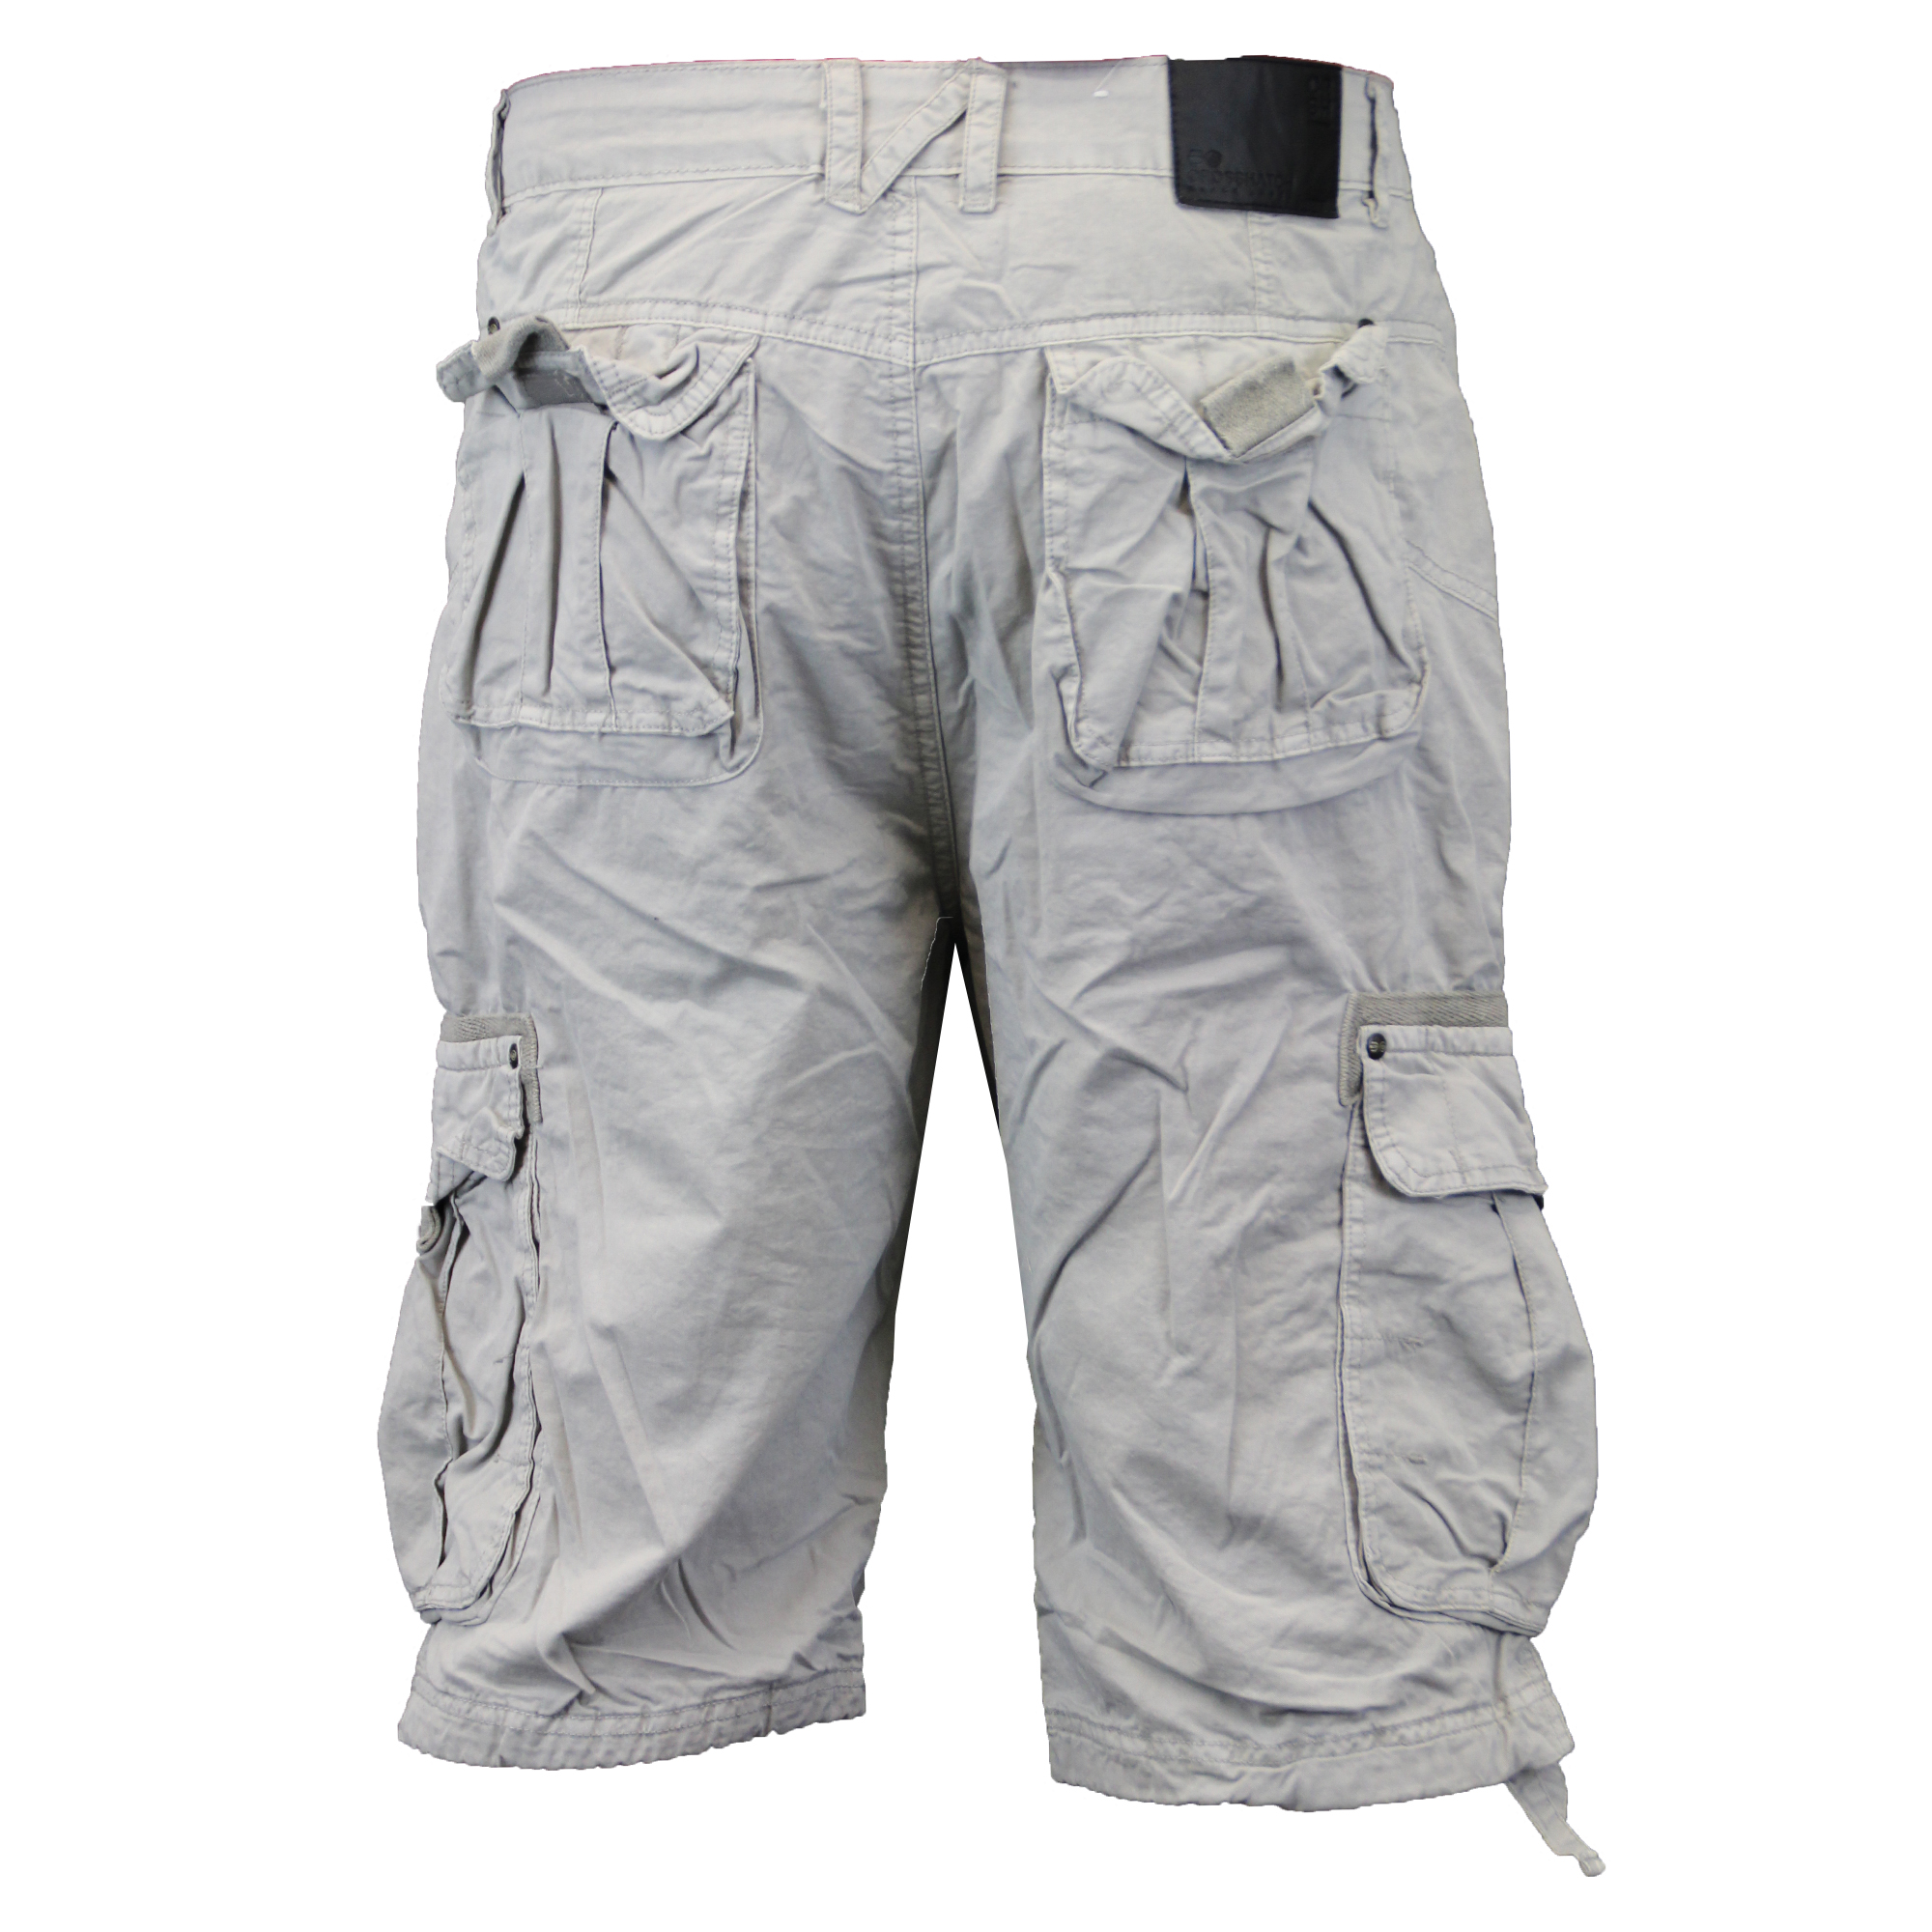 f7d308aced4 Mens Combat Cargo Shorts Crosshatch Knee Length Cotton Casual ...